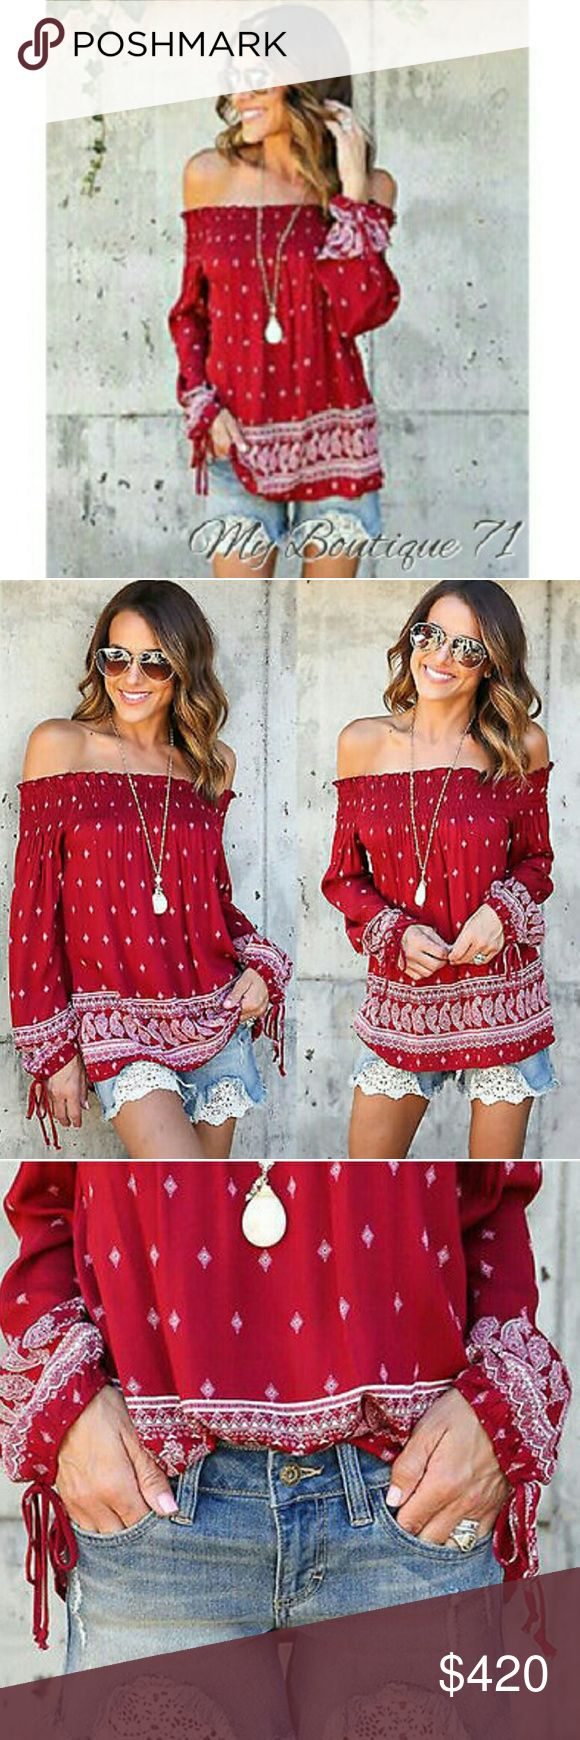 """Coming Soon! $30 The """"Christina"""" Bohemian Off The Shoulder Top in Cherry with Diamond Paisley print. Ties at the cuffs. Long Sleeved. Poly blend Hip Length Pullover Style. See Detailed Size Chart Posted in Photos. All Sales are Final Per Poshmark. Please Read Description and Ask any and all Questions Prior to Purchase. I Want My Customers to be Happy!!Thank you!! Tops"""